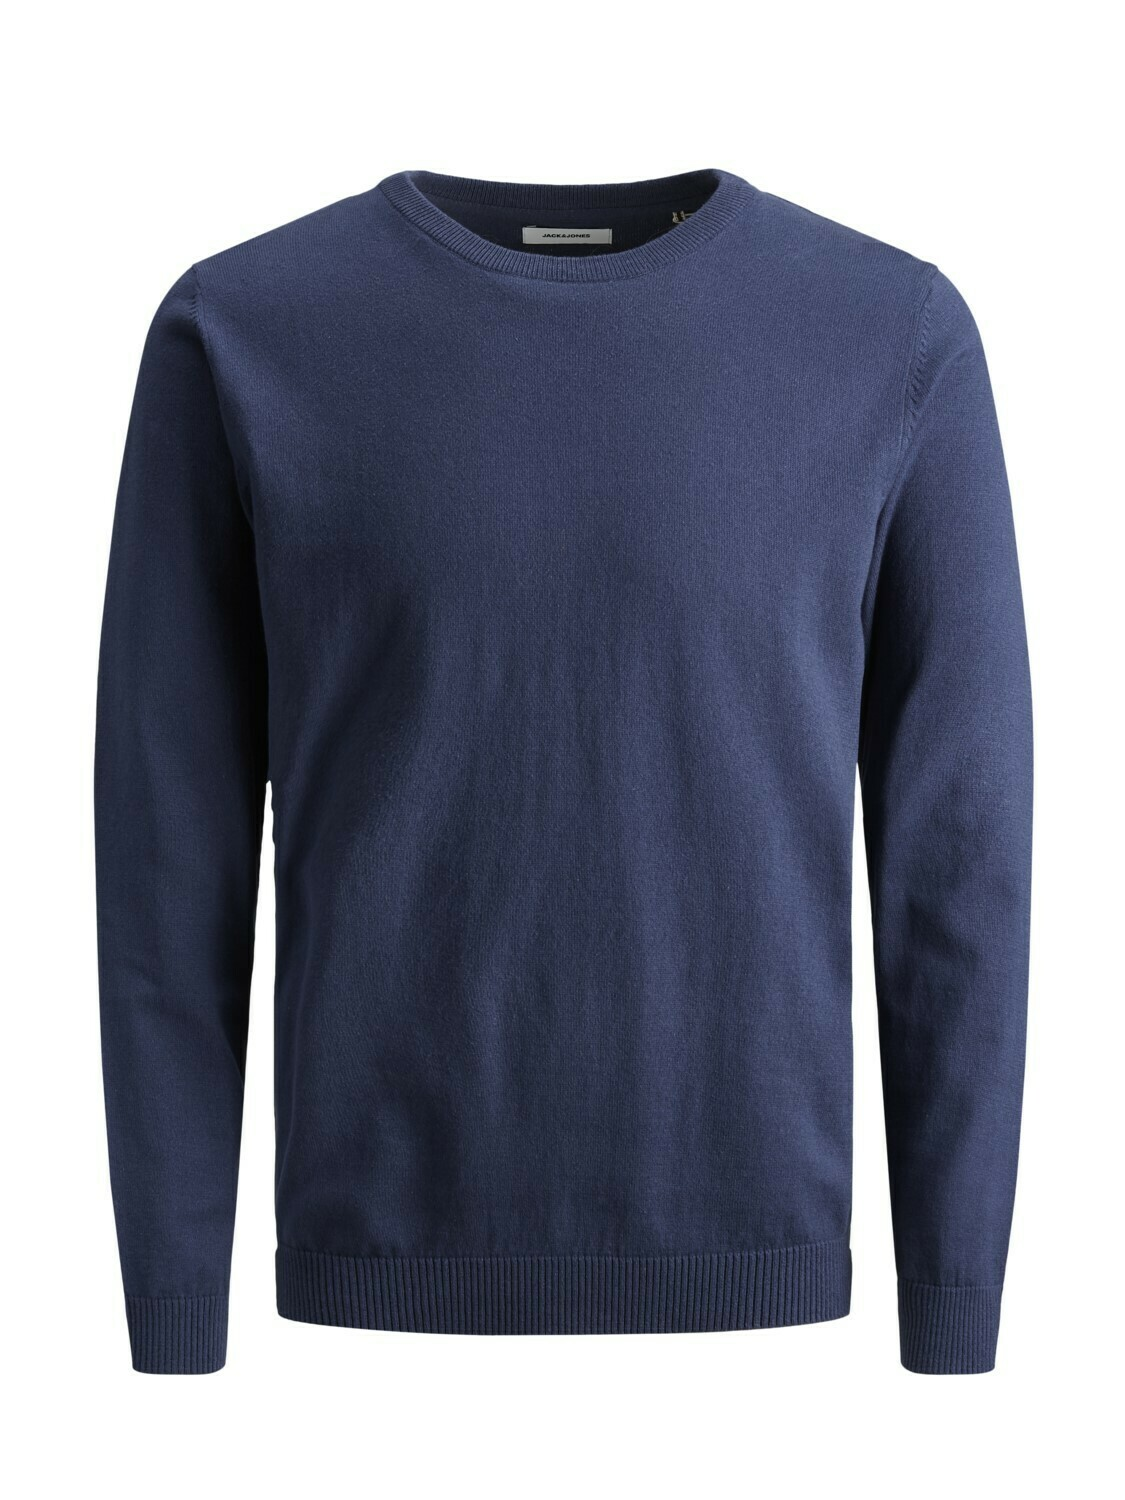 JACK&JONES JJEBASIC KNIT CREW NECK PLUS SIZE BLUE DENIM